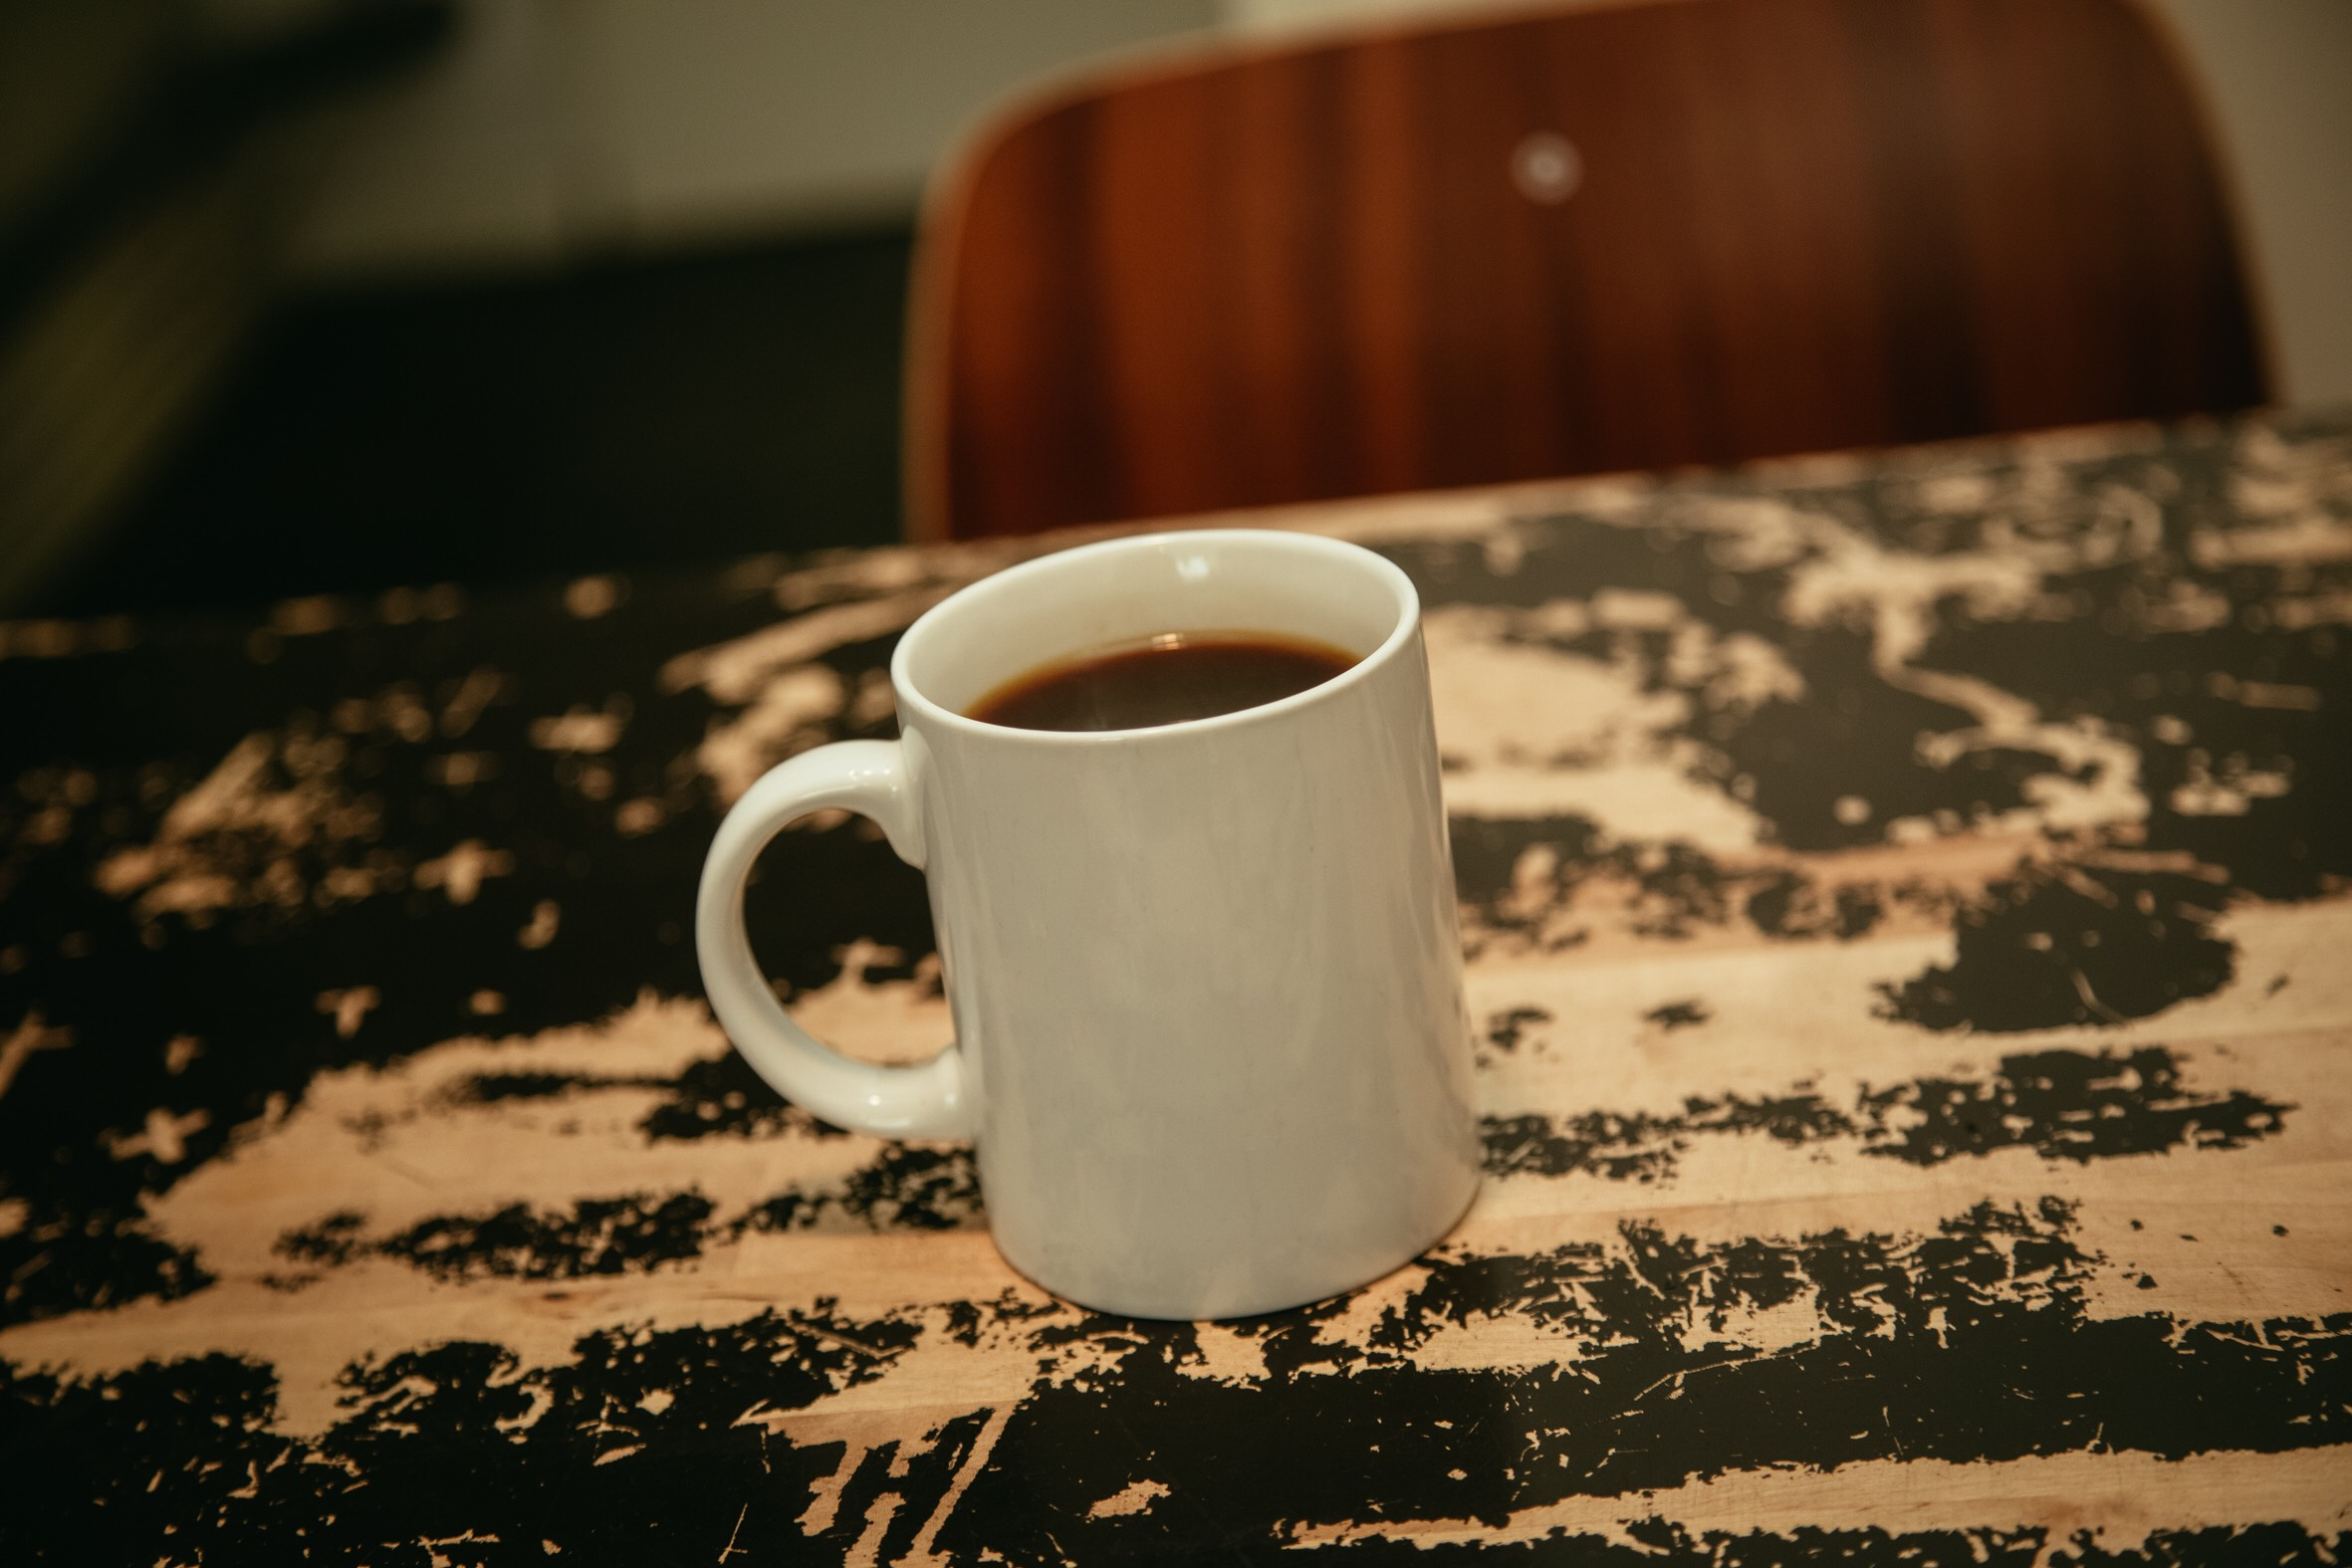 A white mug of filter coffee on a wooden table.